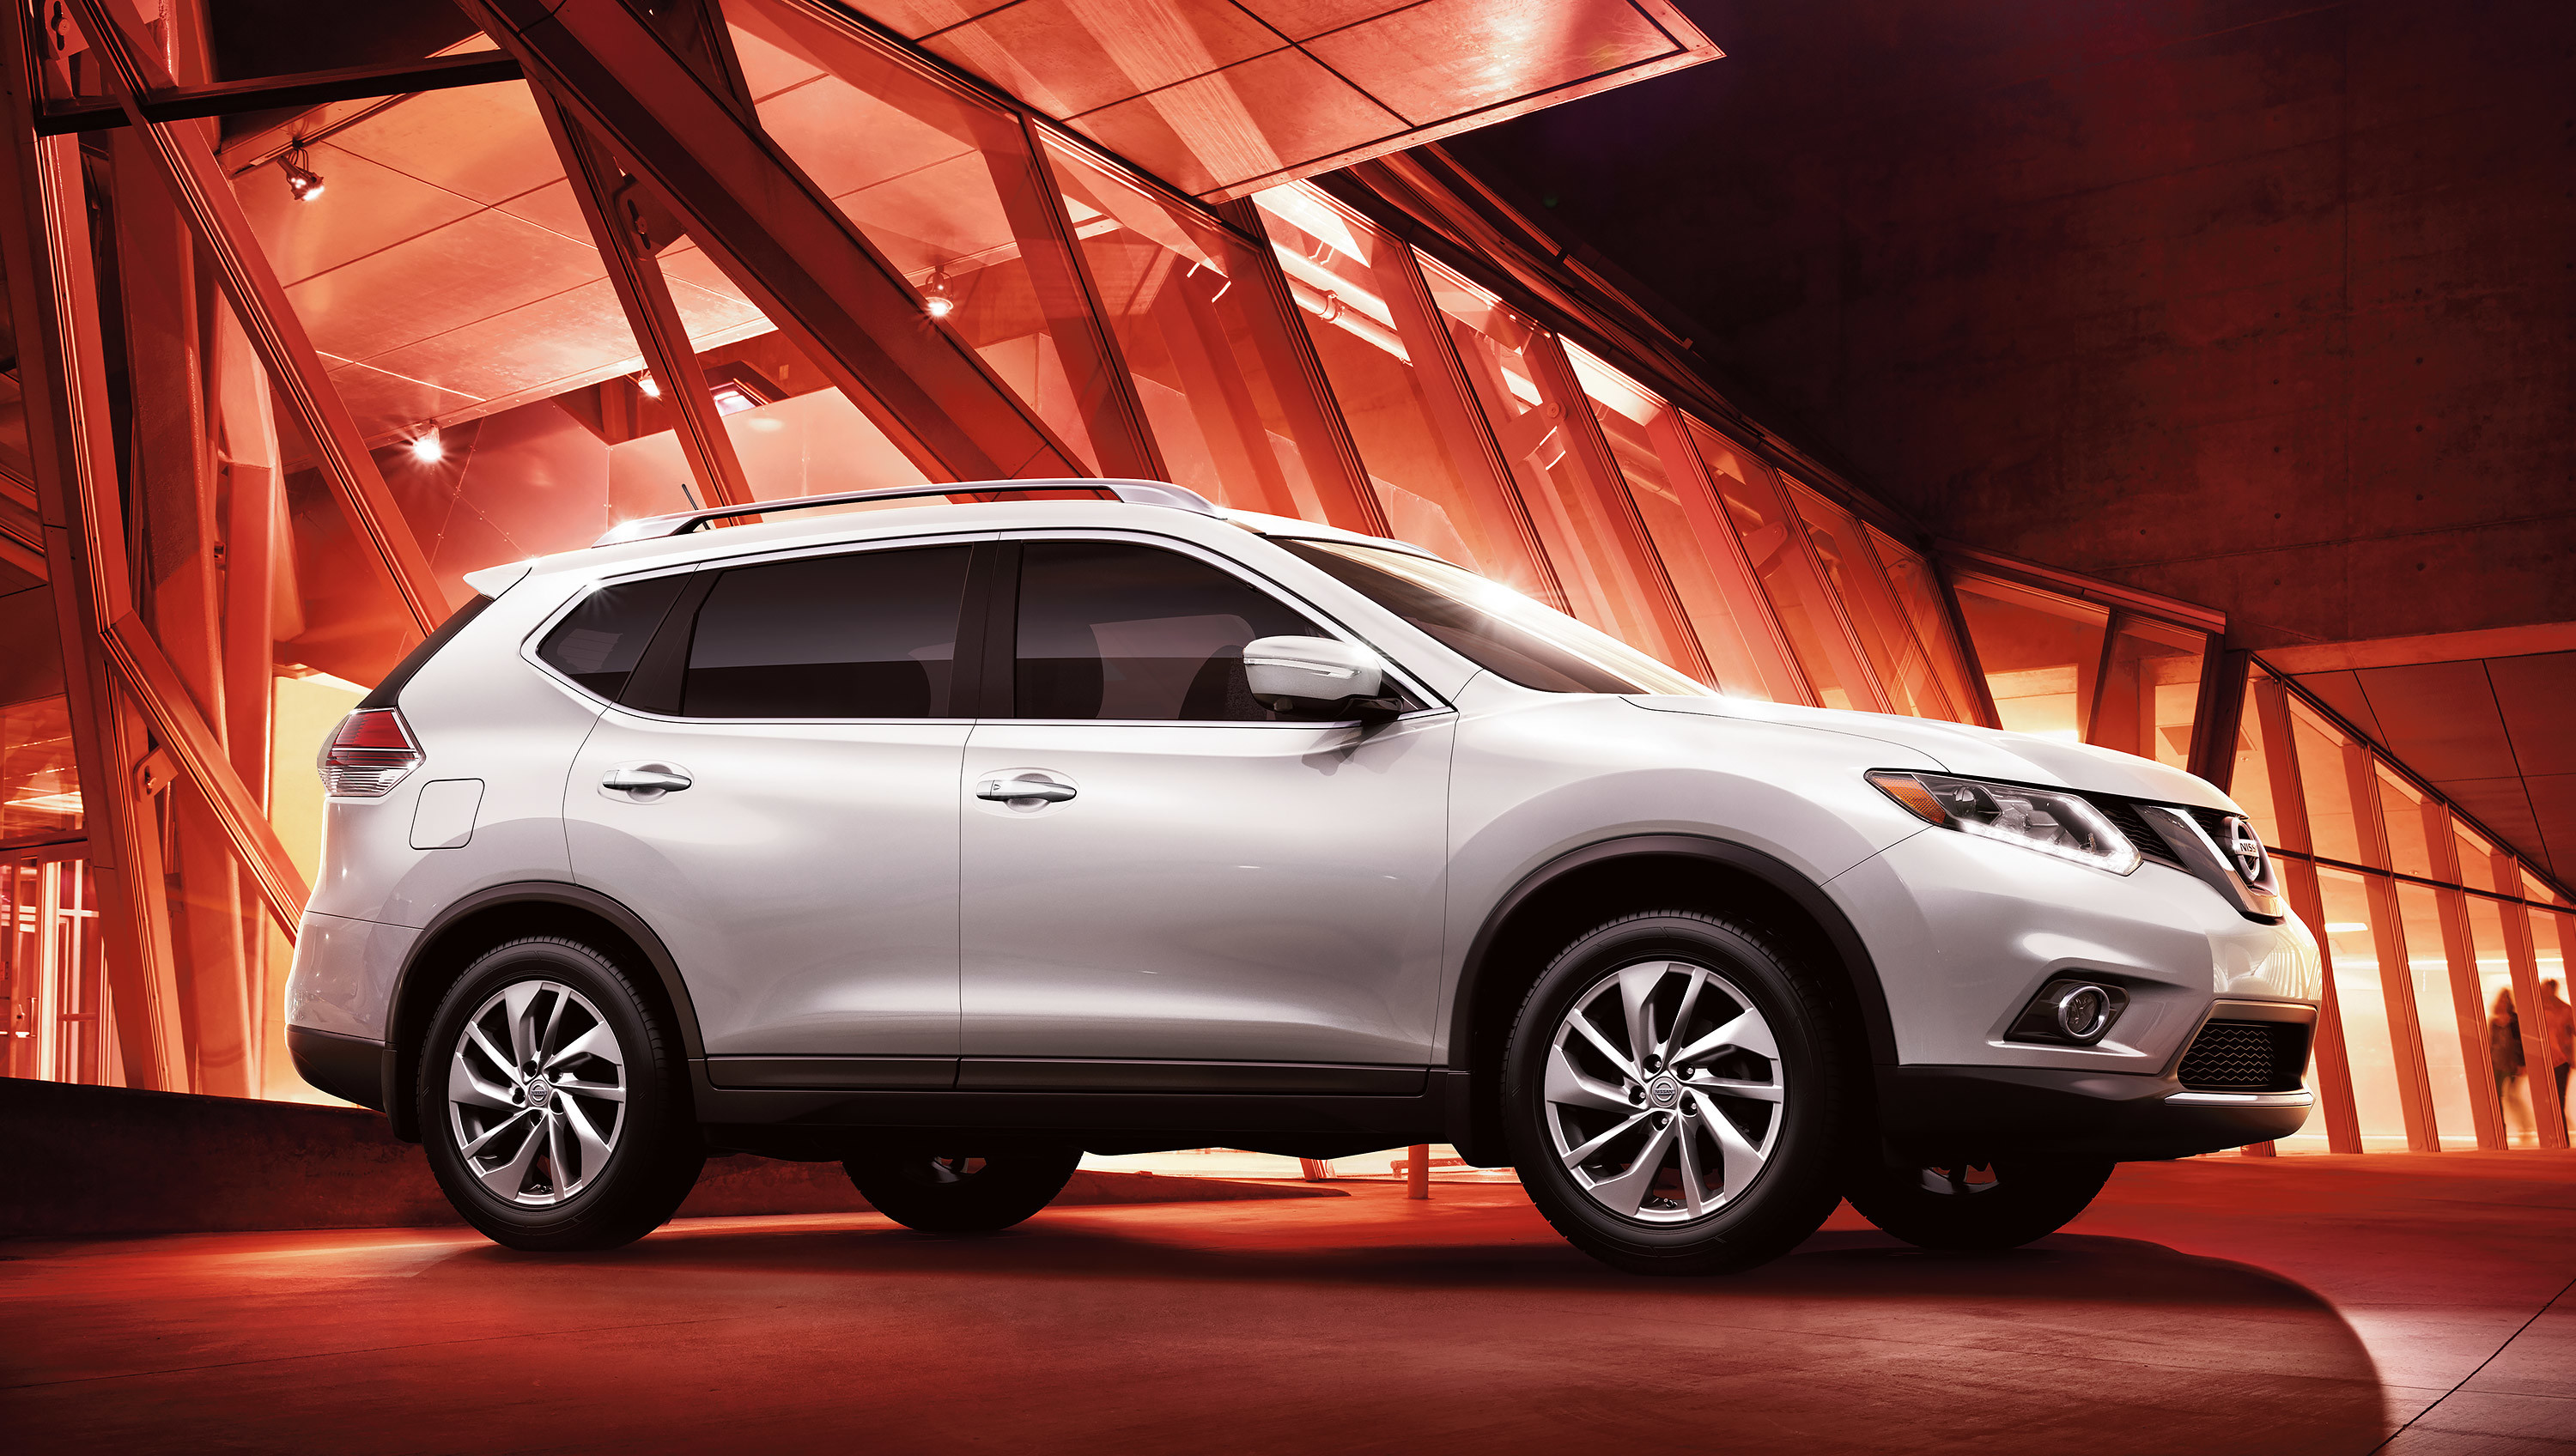 displays in zoom qc nissan is of at sold system gris this located by and being a rogue auto en the laval vehicle price